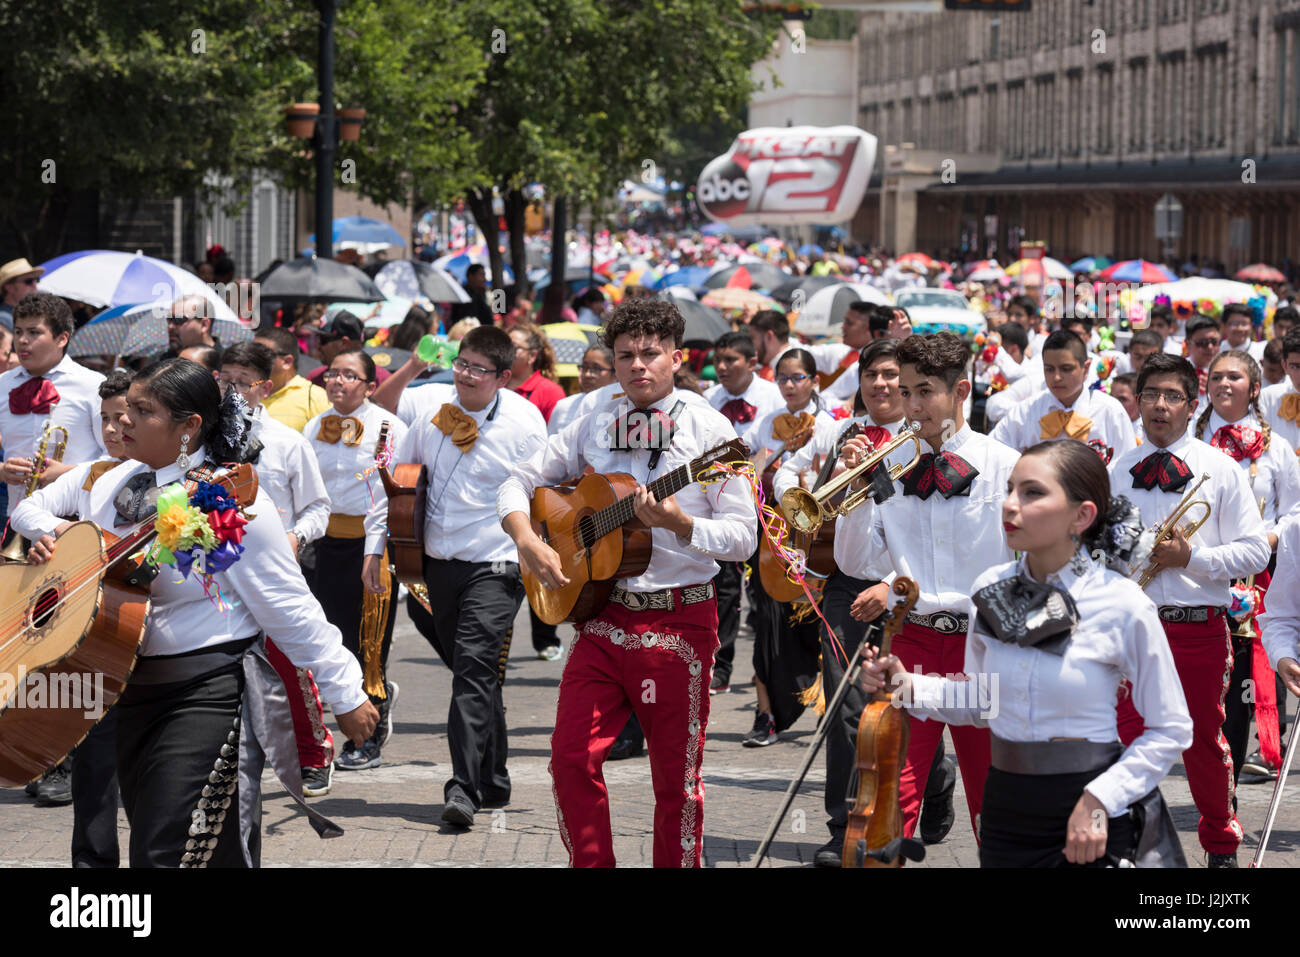 The battle of flowers parade is the oldest event and largest parade of fiesta san